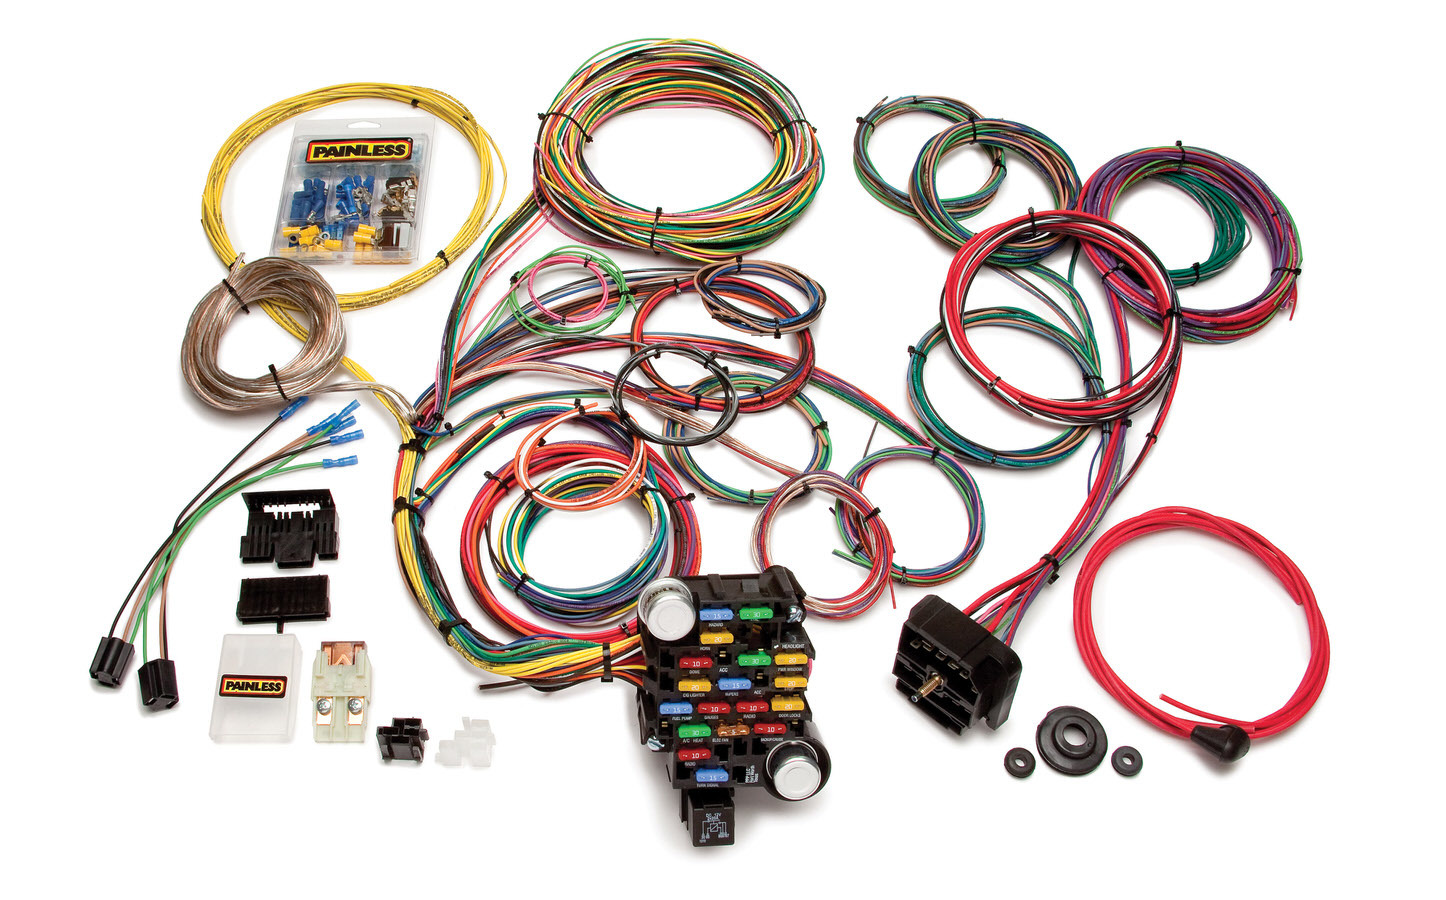 Painless Wiring 20104 Car Wiring Harness, Classic-Plus Customizable Muscle Car, Complete, 28 Circuit, Universal, Kit